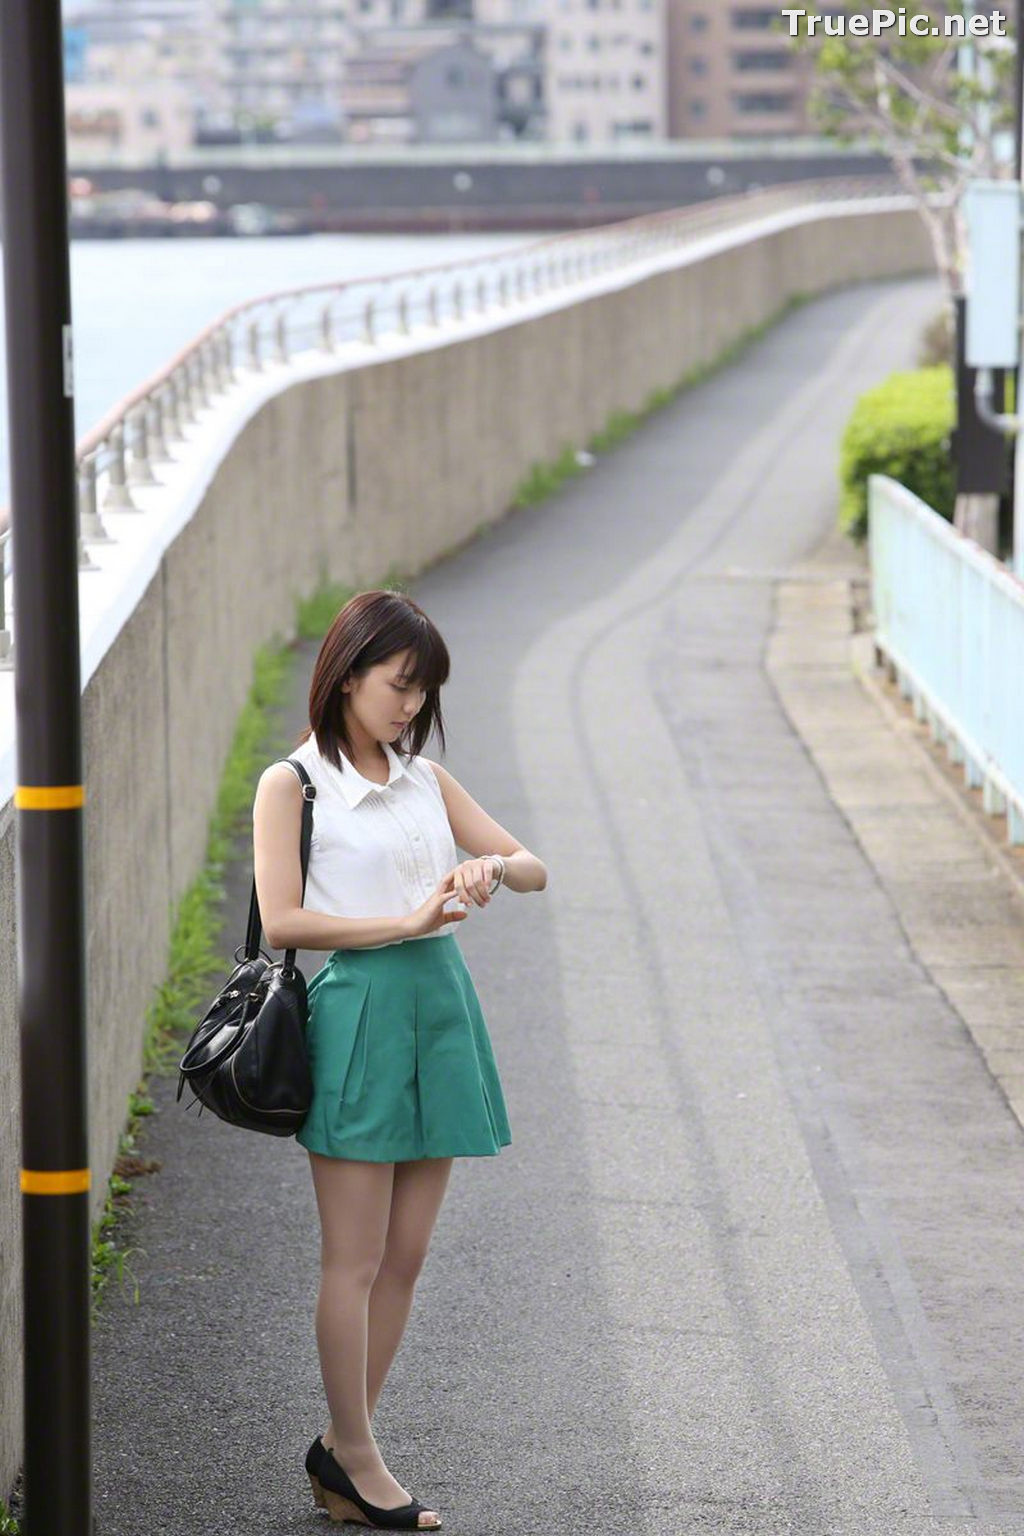 Image [WBGC Photograph] No.131 - Japanese Singer and Actress - Erina Mano - TruePic.net - Picture-5